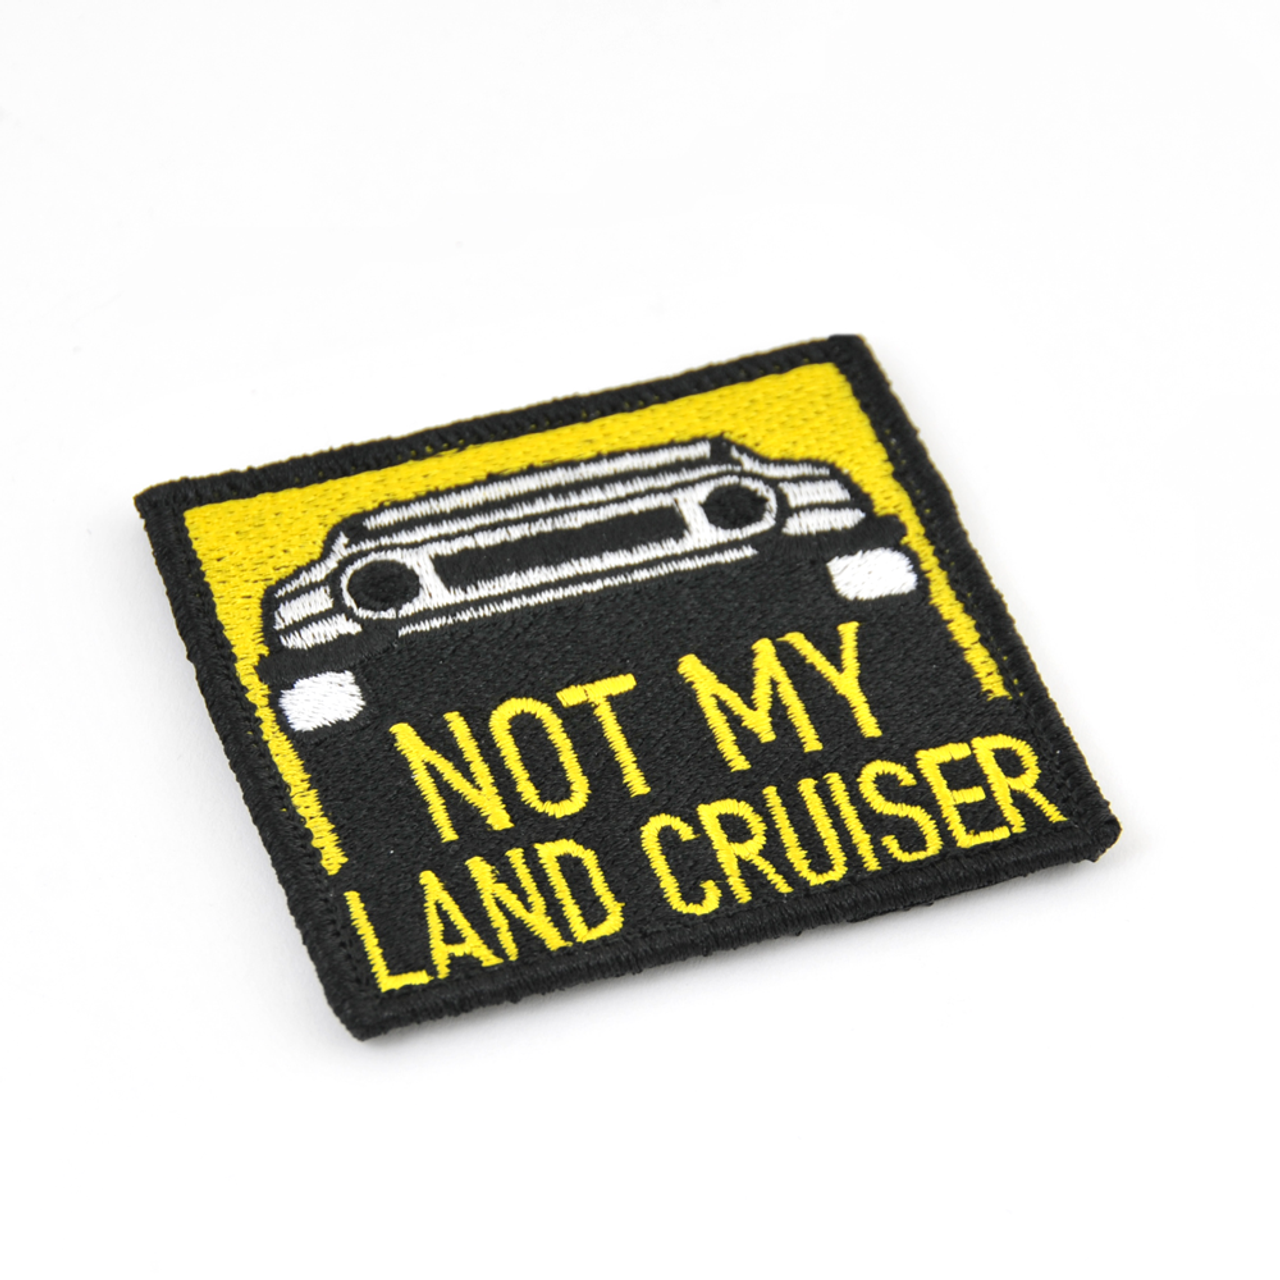 Not My Land Cruiser patch (WEP-3)